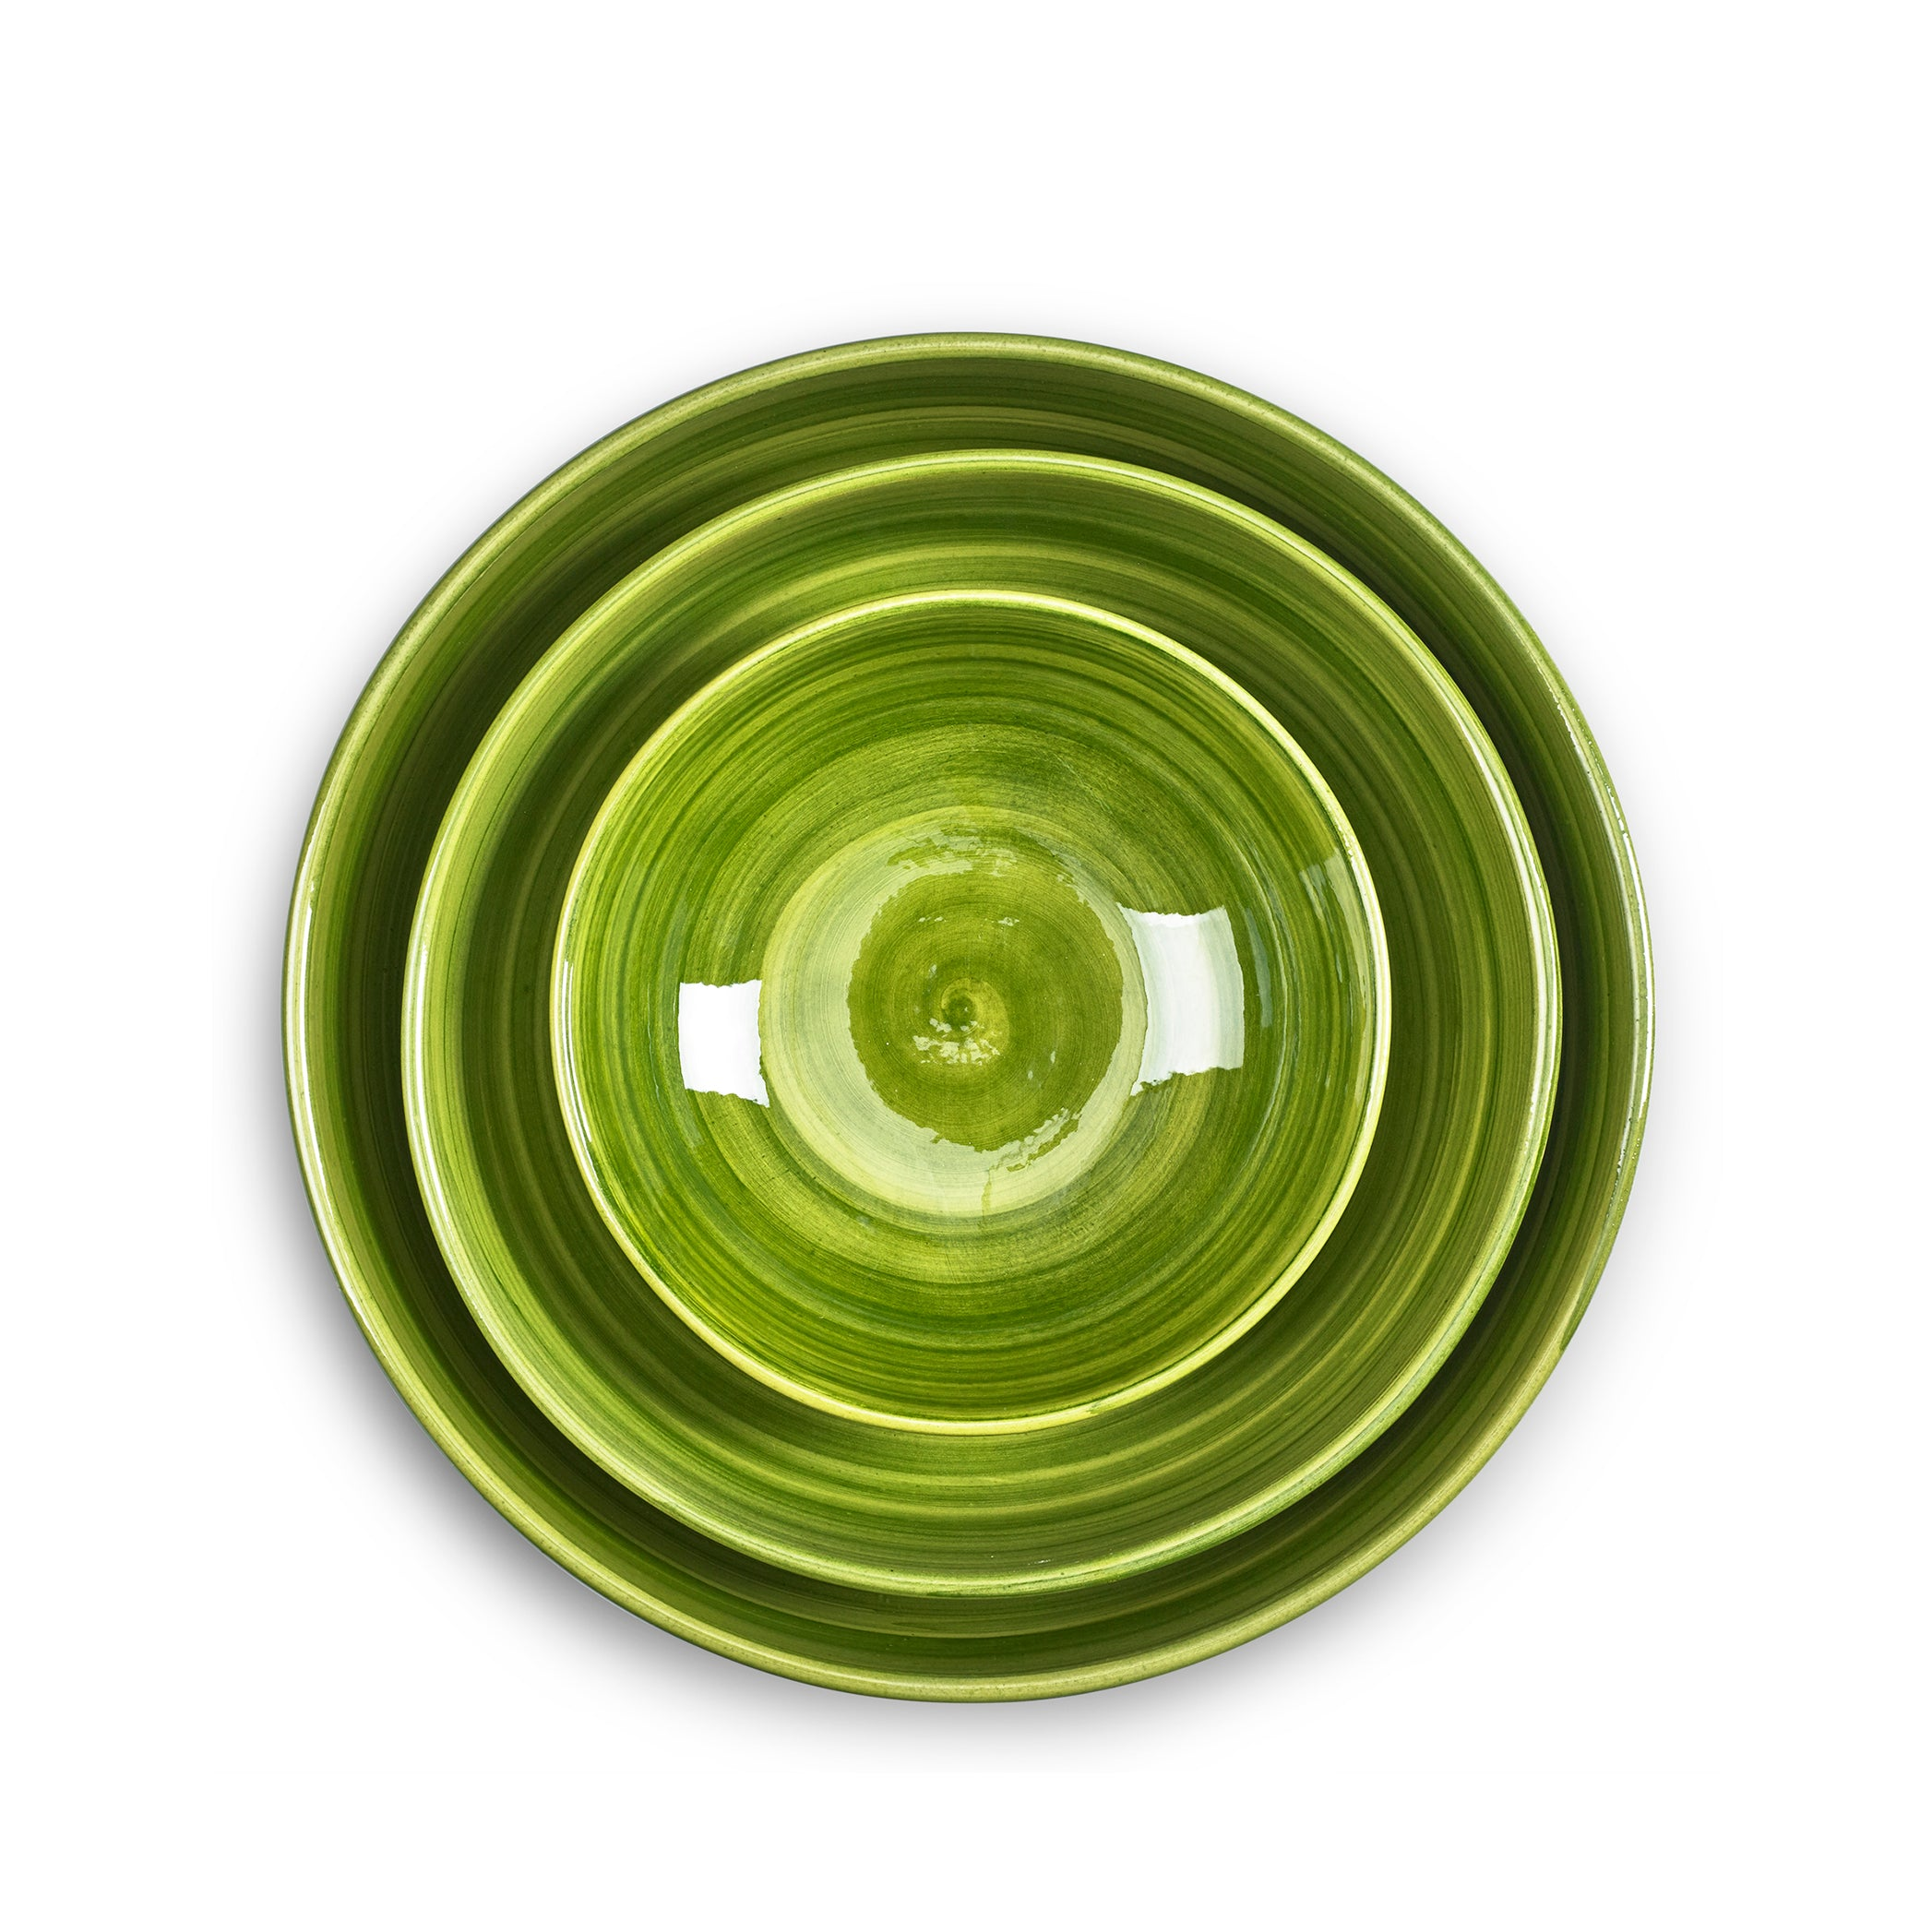 "S&B ""La Couronne"" 18.5cm Ceramic Soup Bowl in Green"